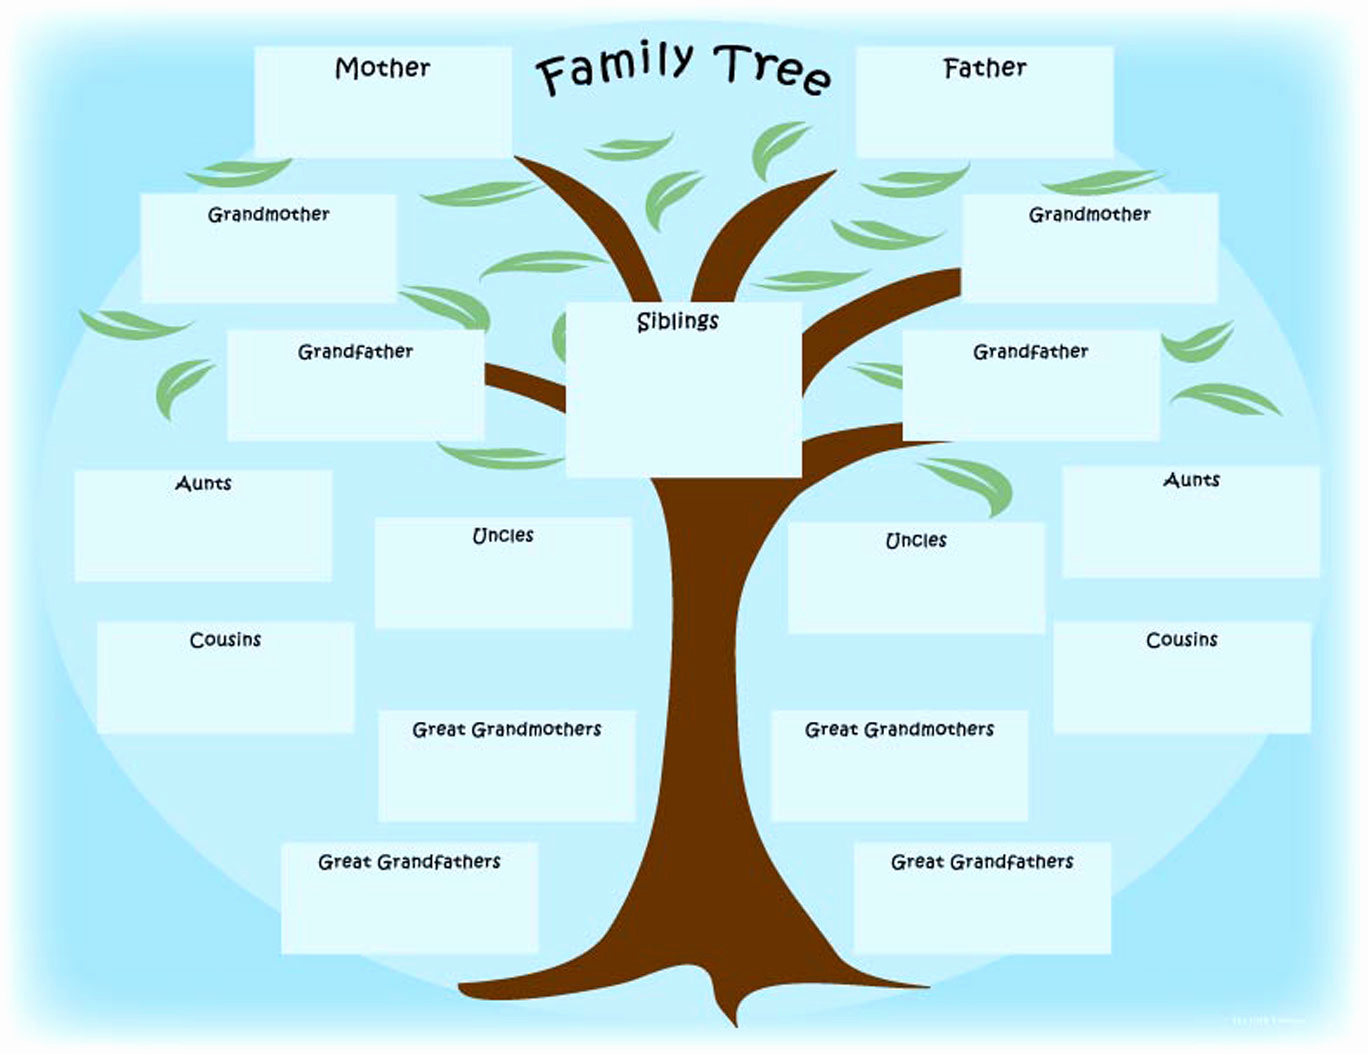 Make Your Own Family Tree Awesome Greek Mythology Greek God Family Tree & Mythological Maps